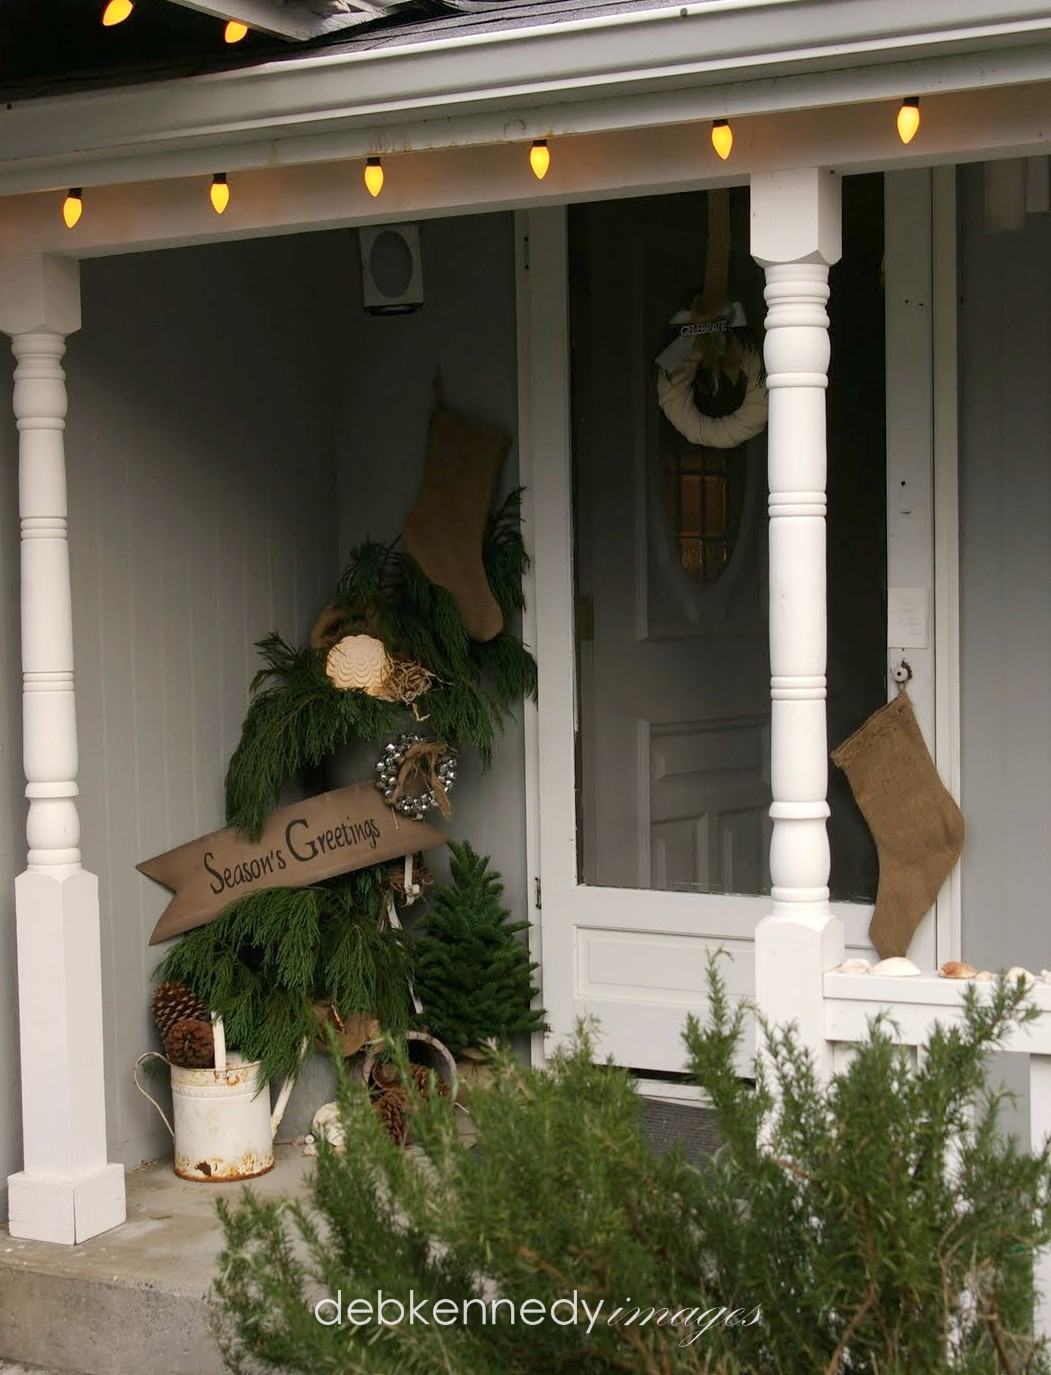 Front porch holiday decor raid the garden shed again for Decorating a small front porch for christmas